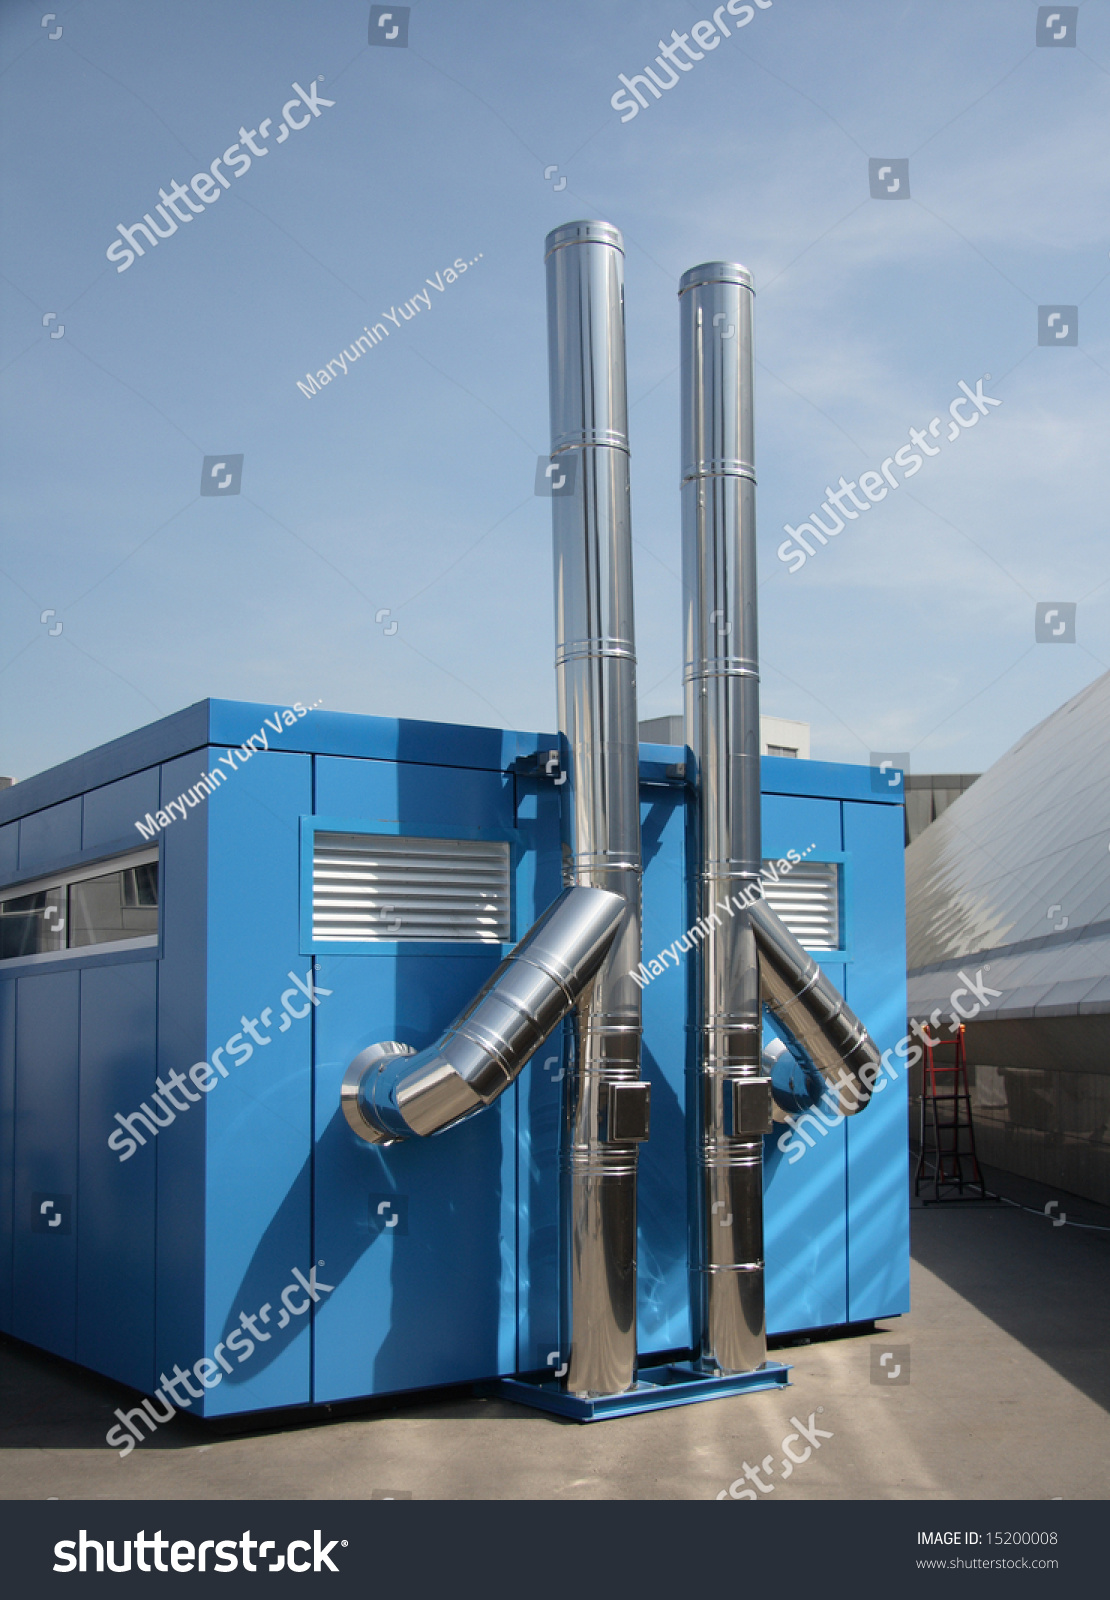 Chimneys Stainless Steel Independent Boilerhouse Stock Photo (Edit ...